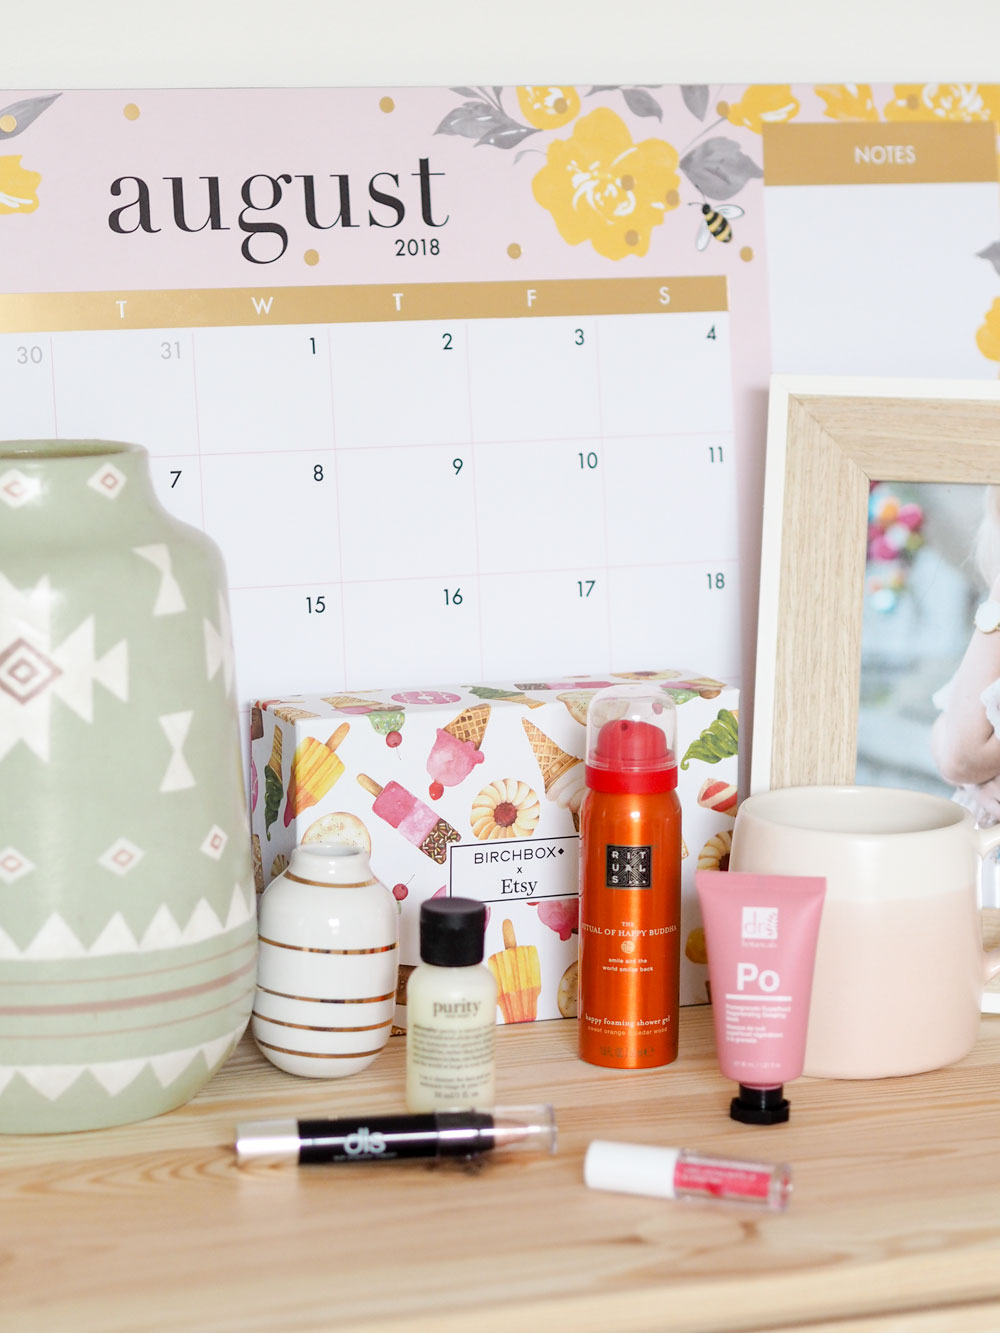 Birchbox collaborates with Etsy for its August subscription beauty box, highlighting the talents of 10 Etsy sellers with varying box designs.